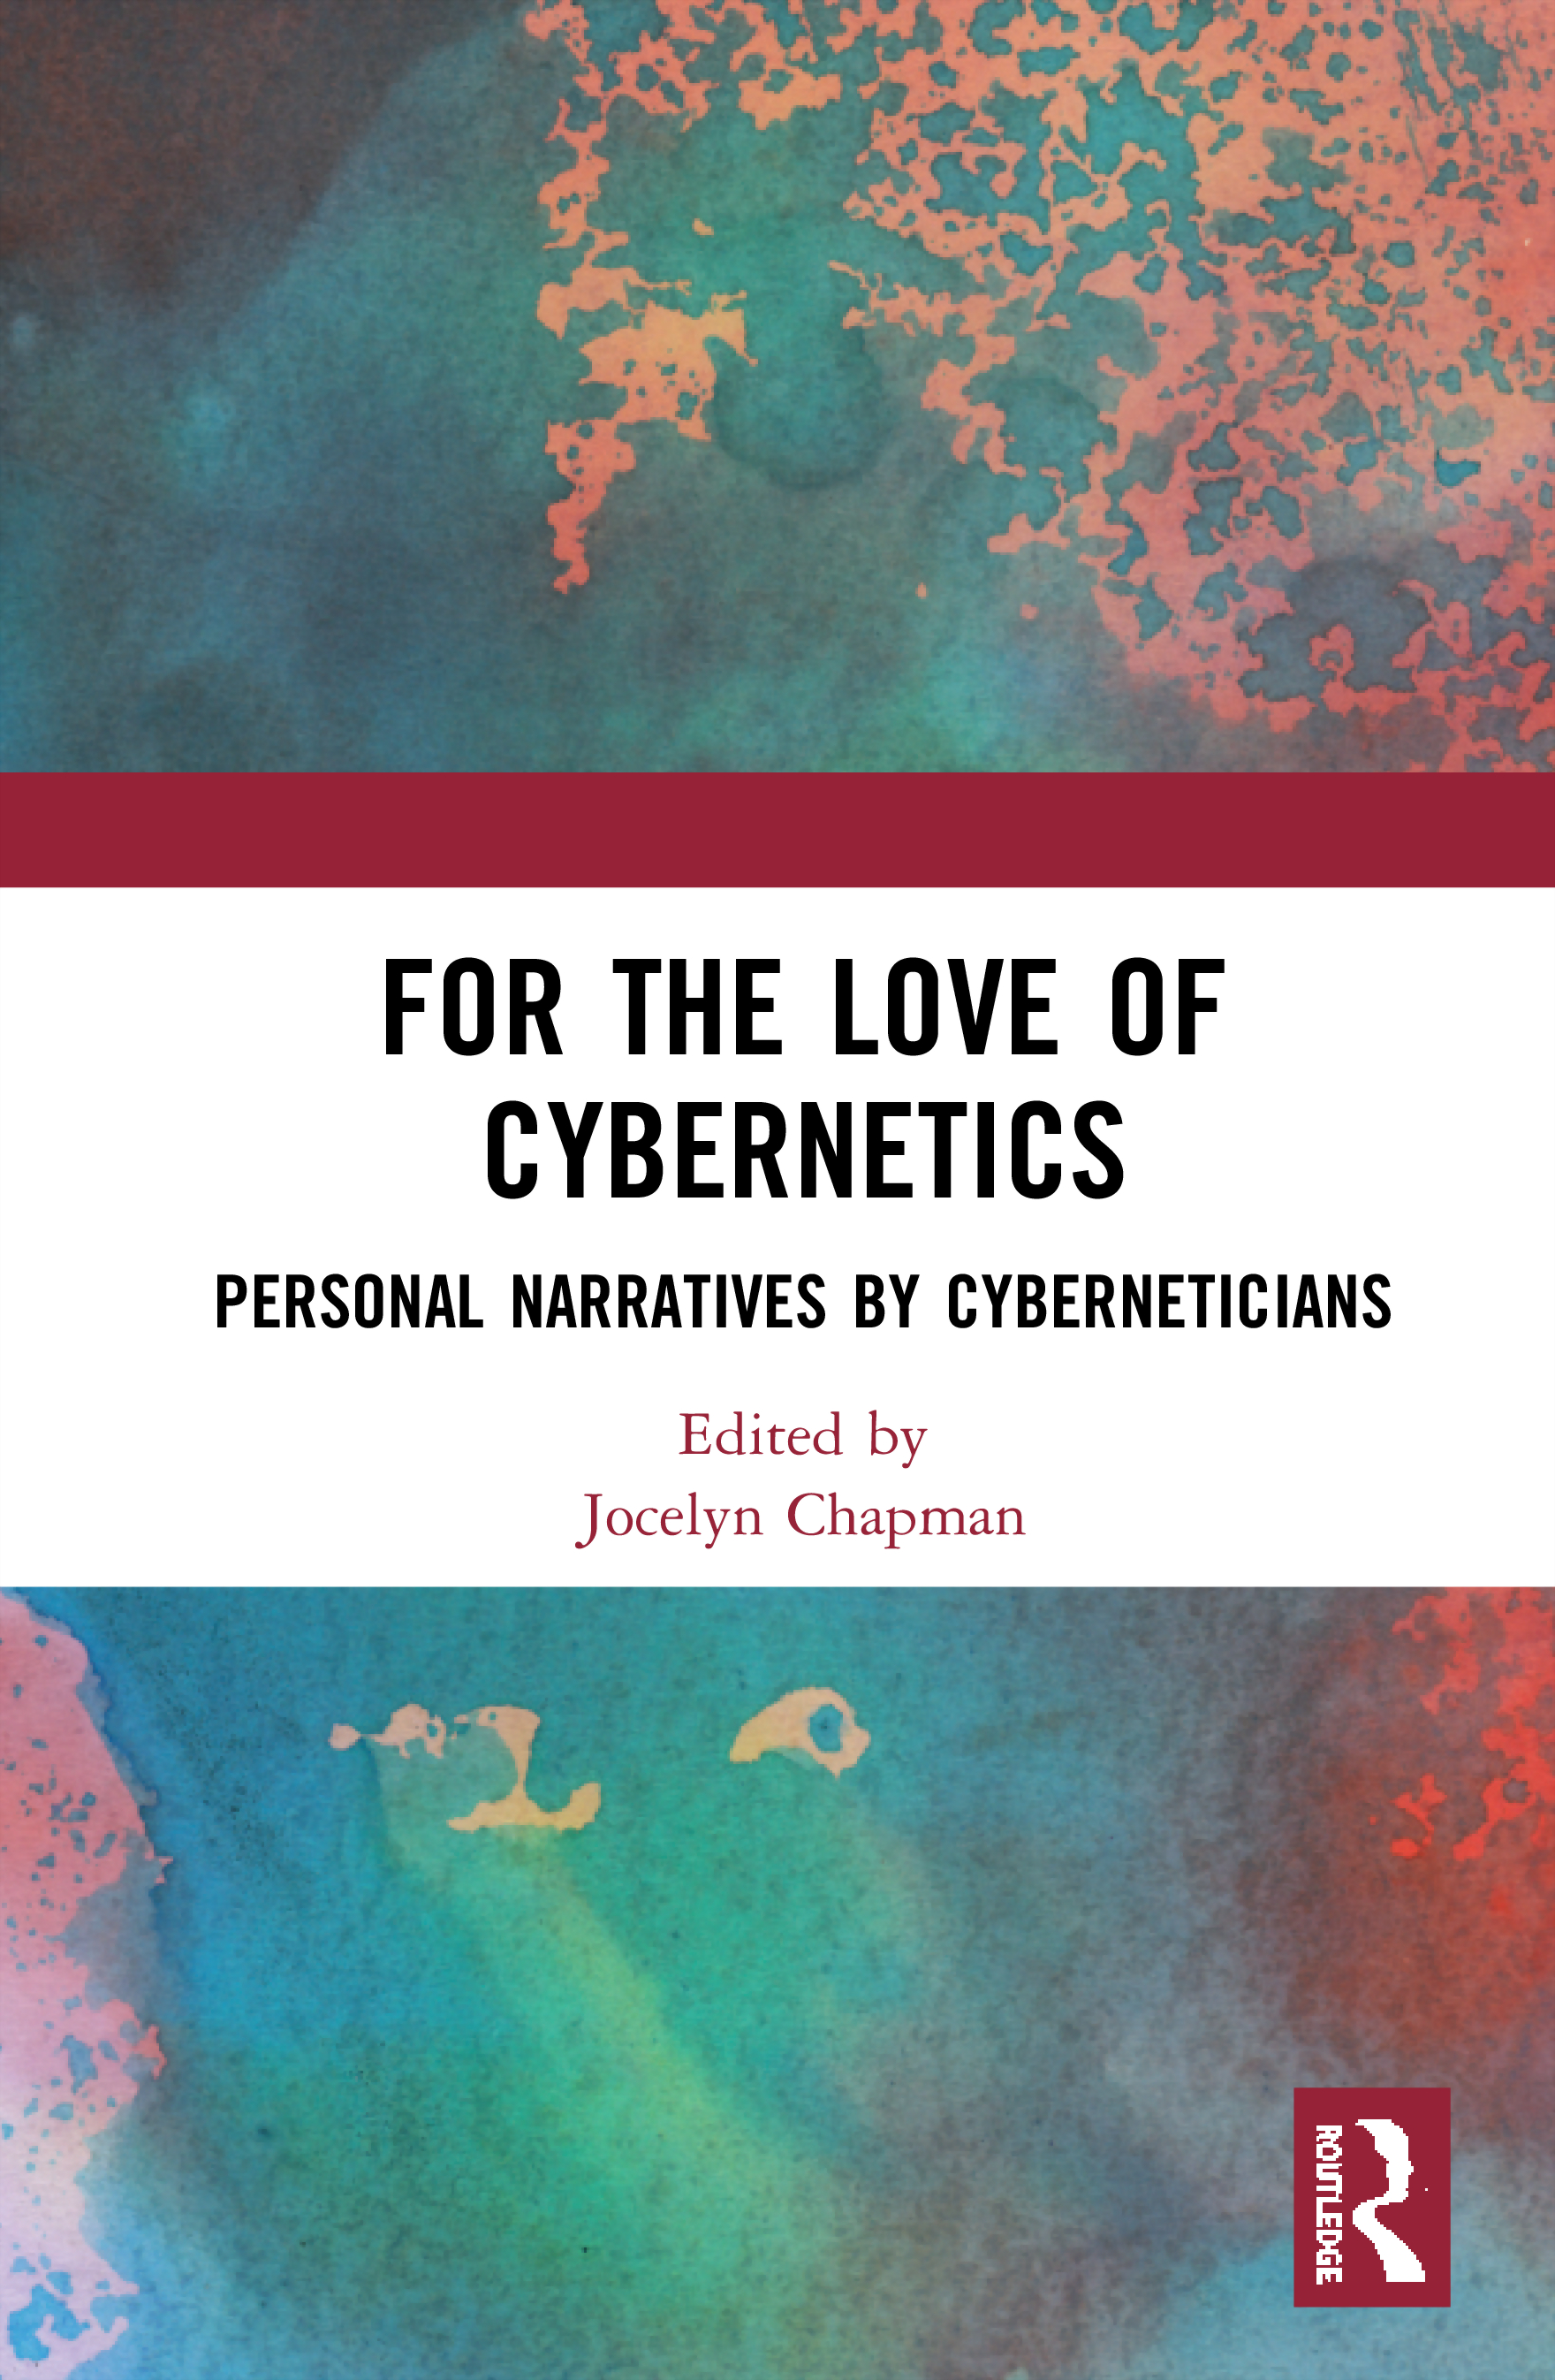 For the Love of Cybernetics: Personal Narratives by Cyberneticians: Personal Narratives by Cyberneticians book cover